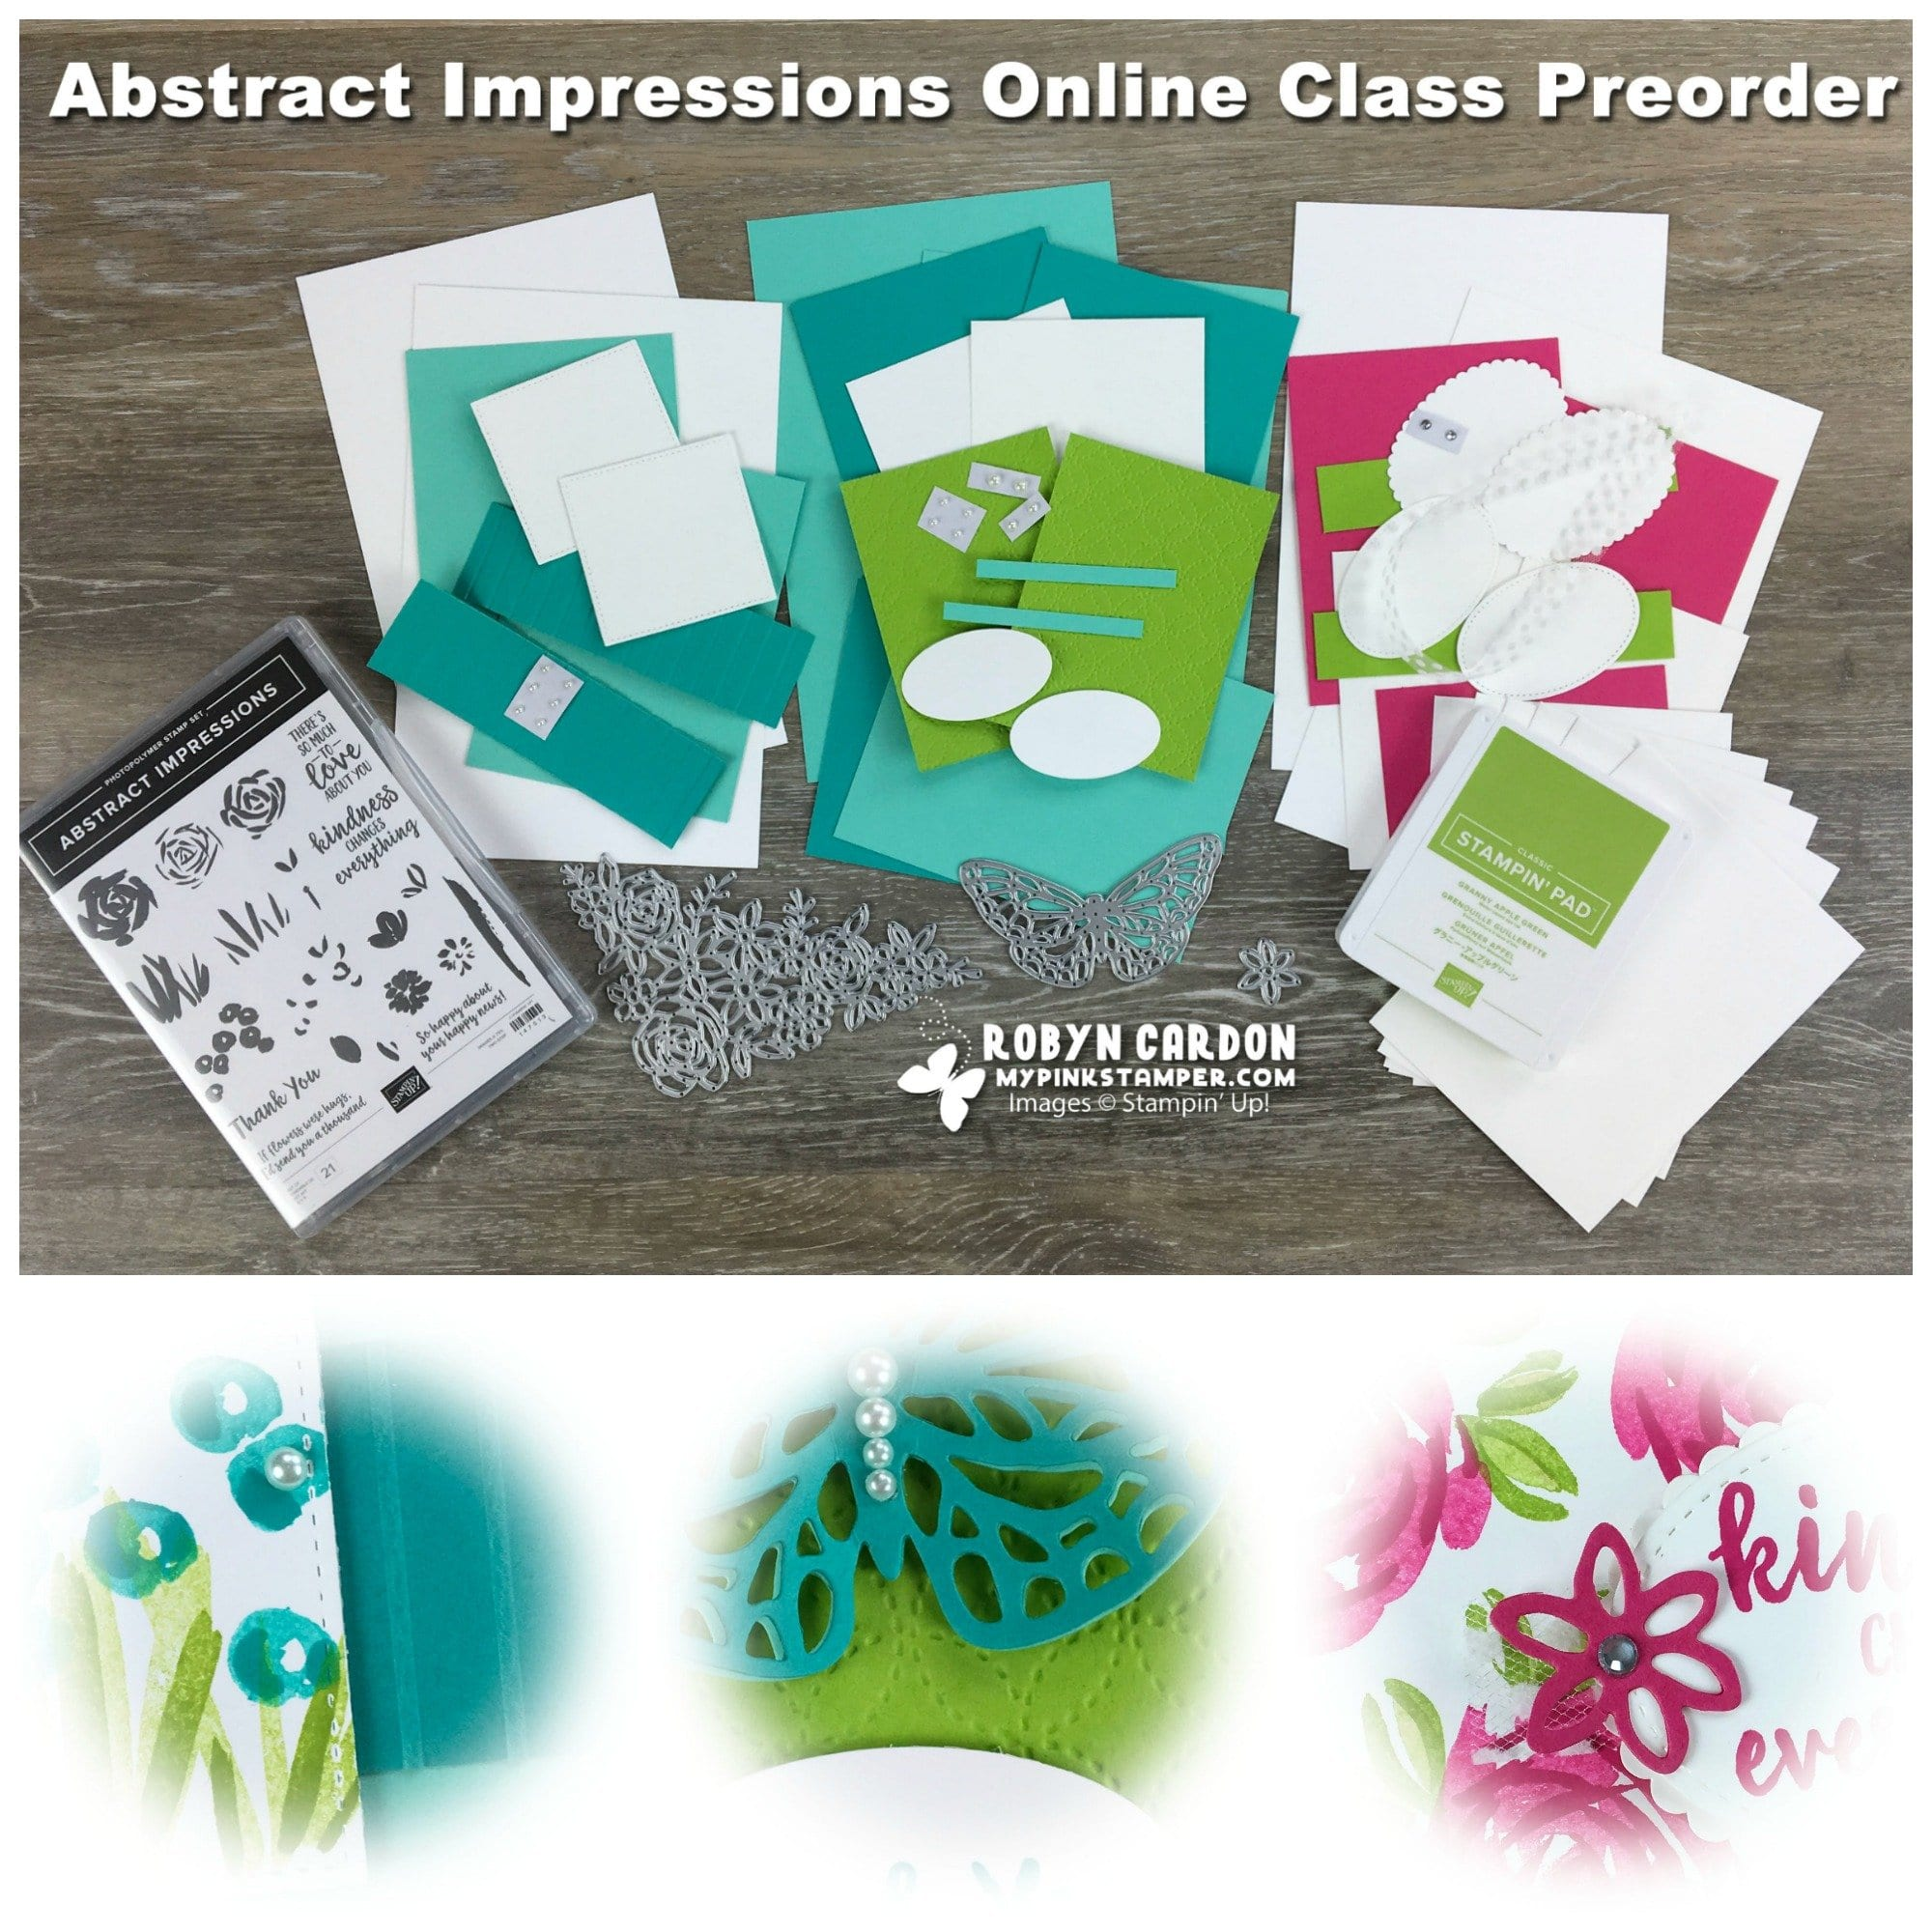 Abstract Impressions Online Class Preorder Now Open!